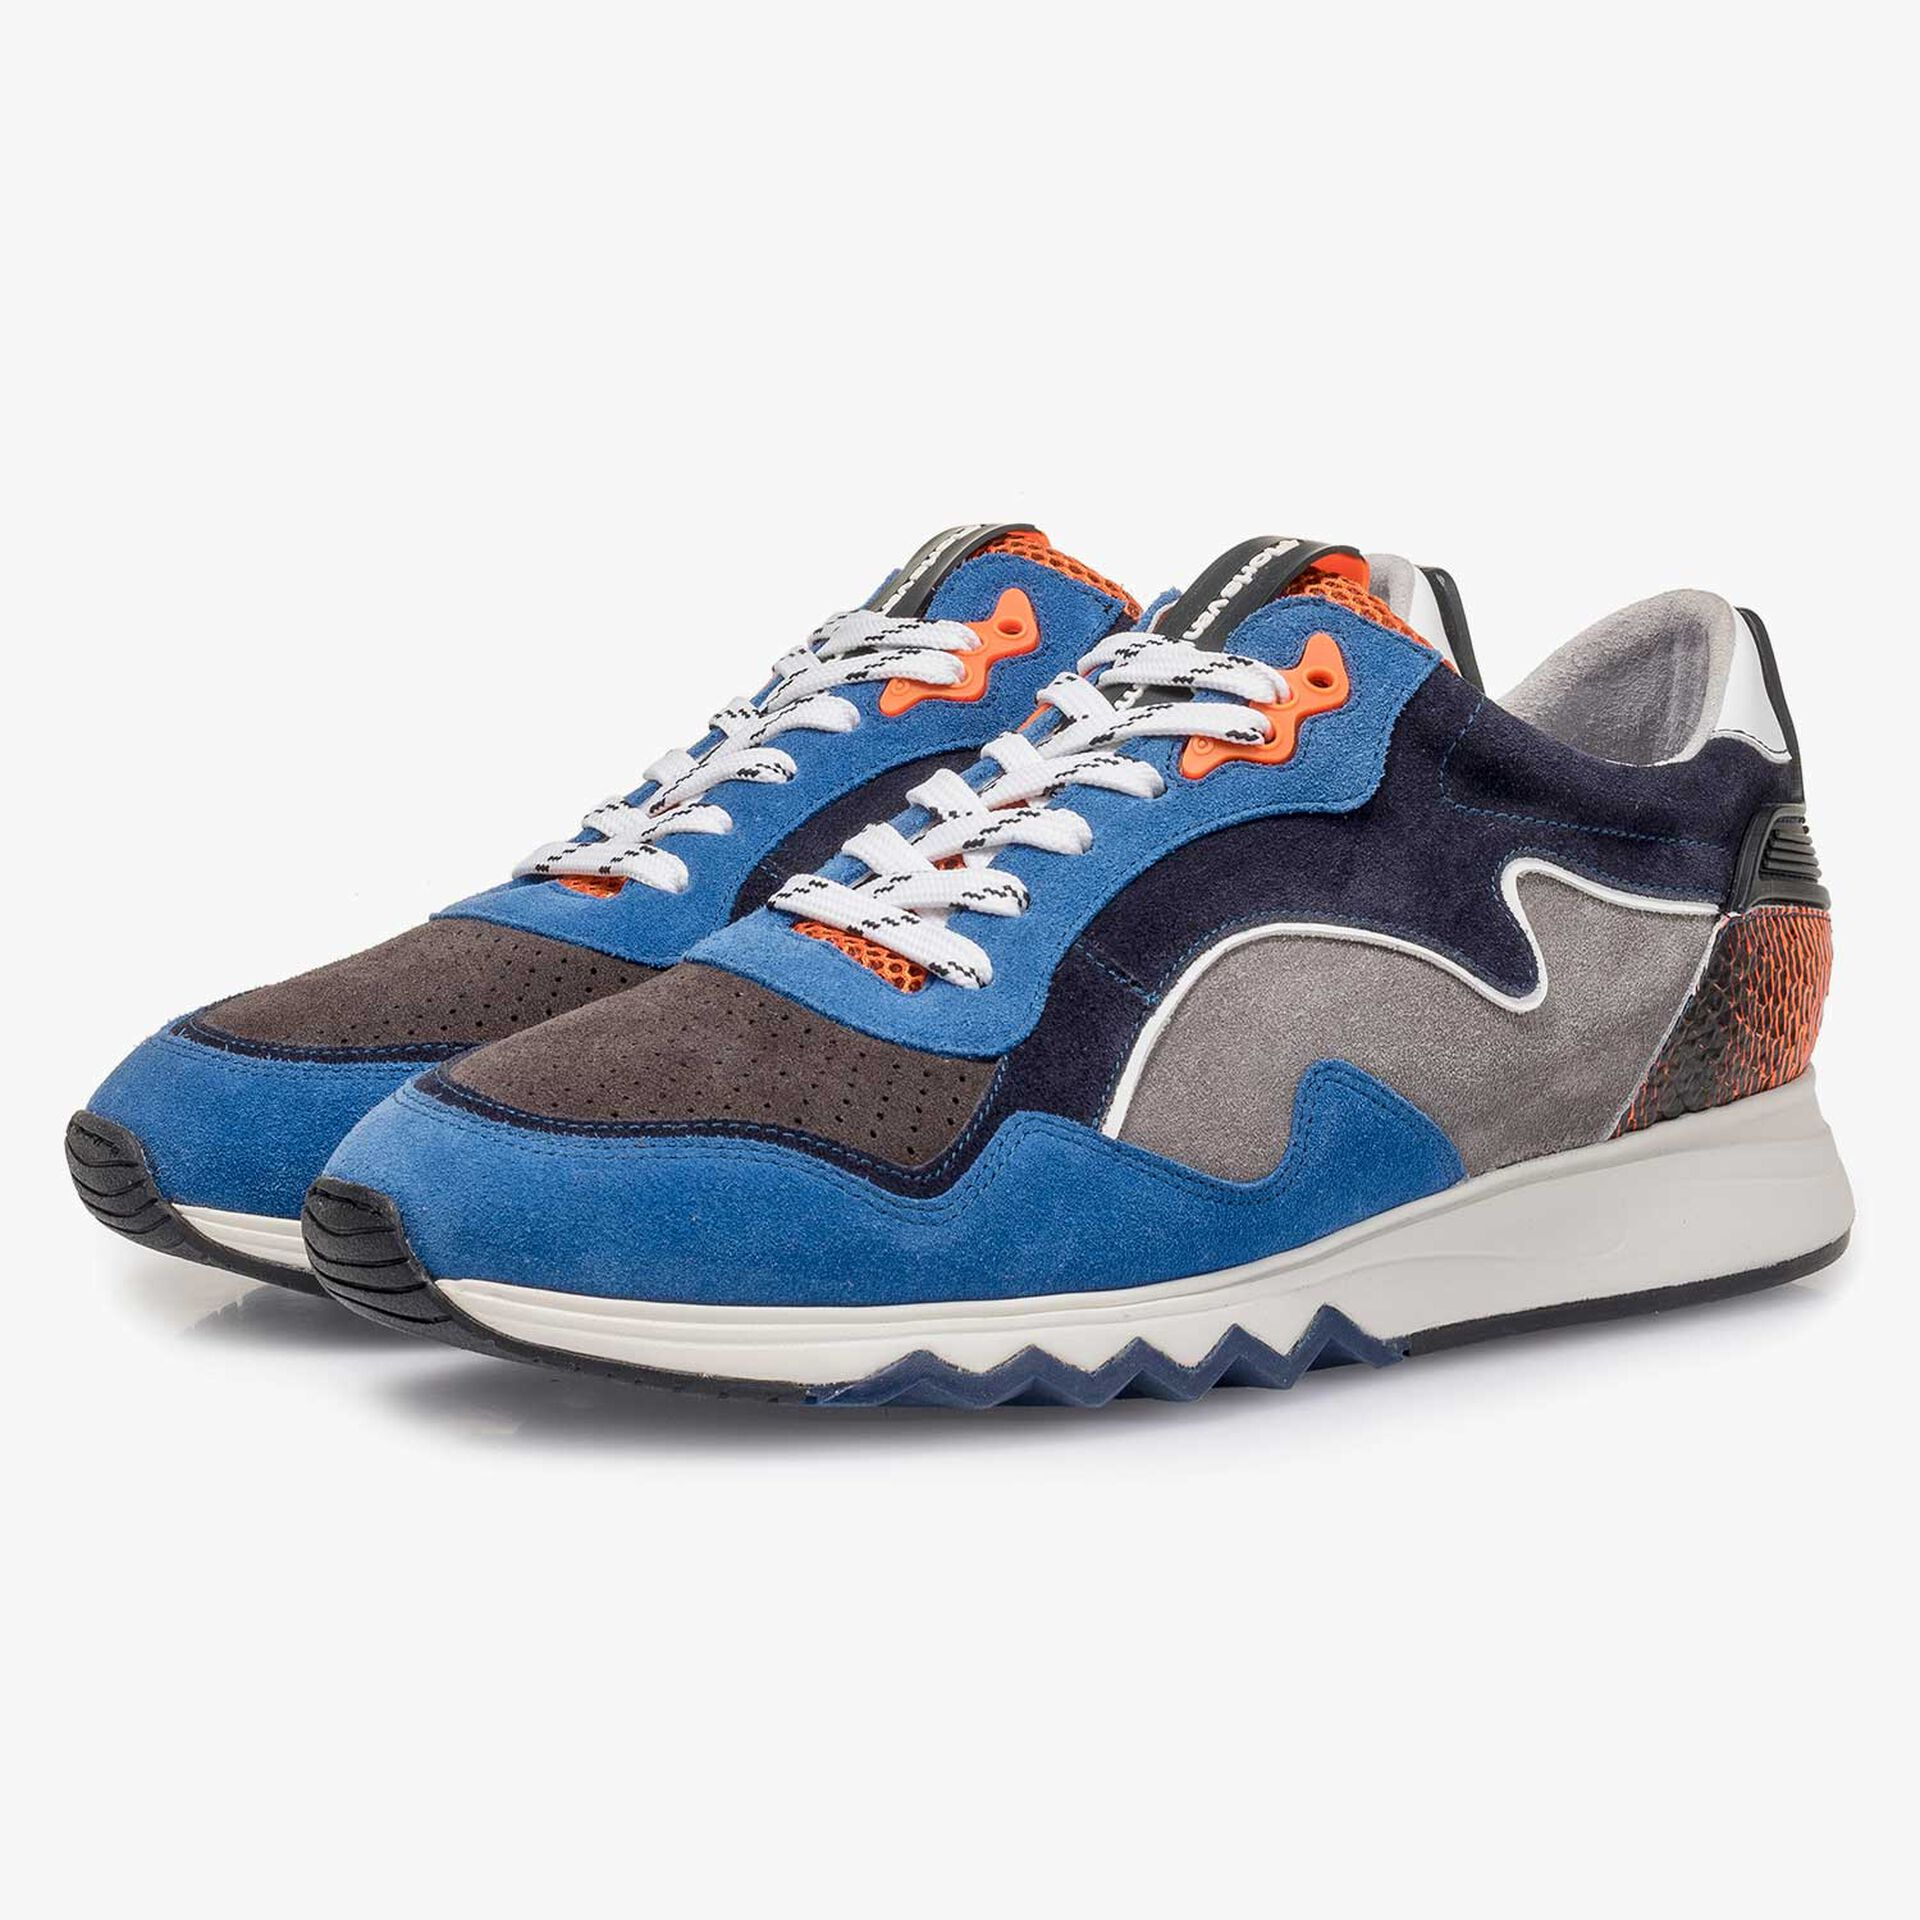 Blue-orange suede leather sneaker